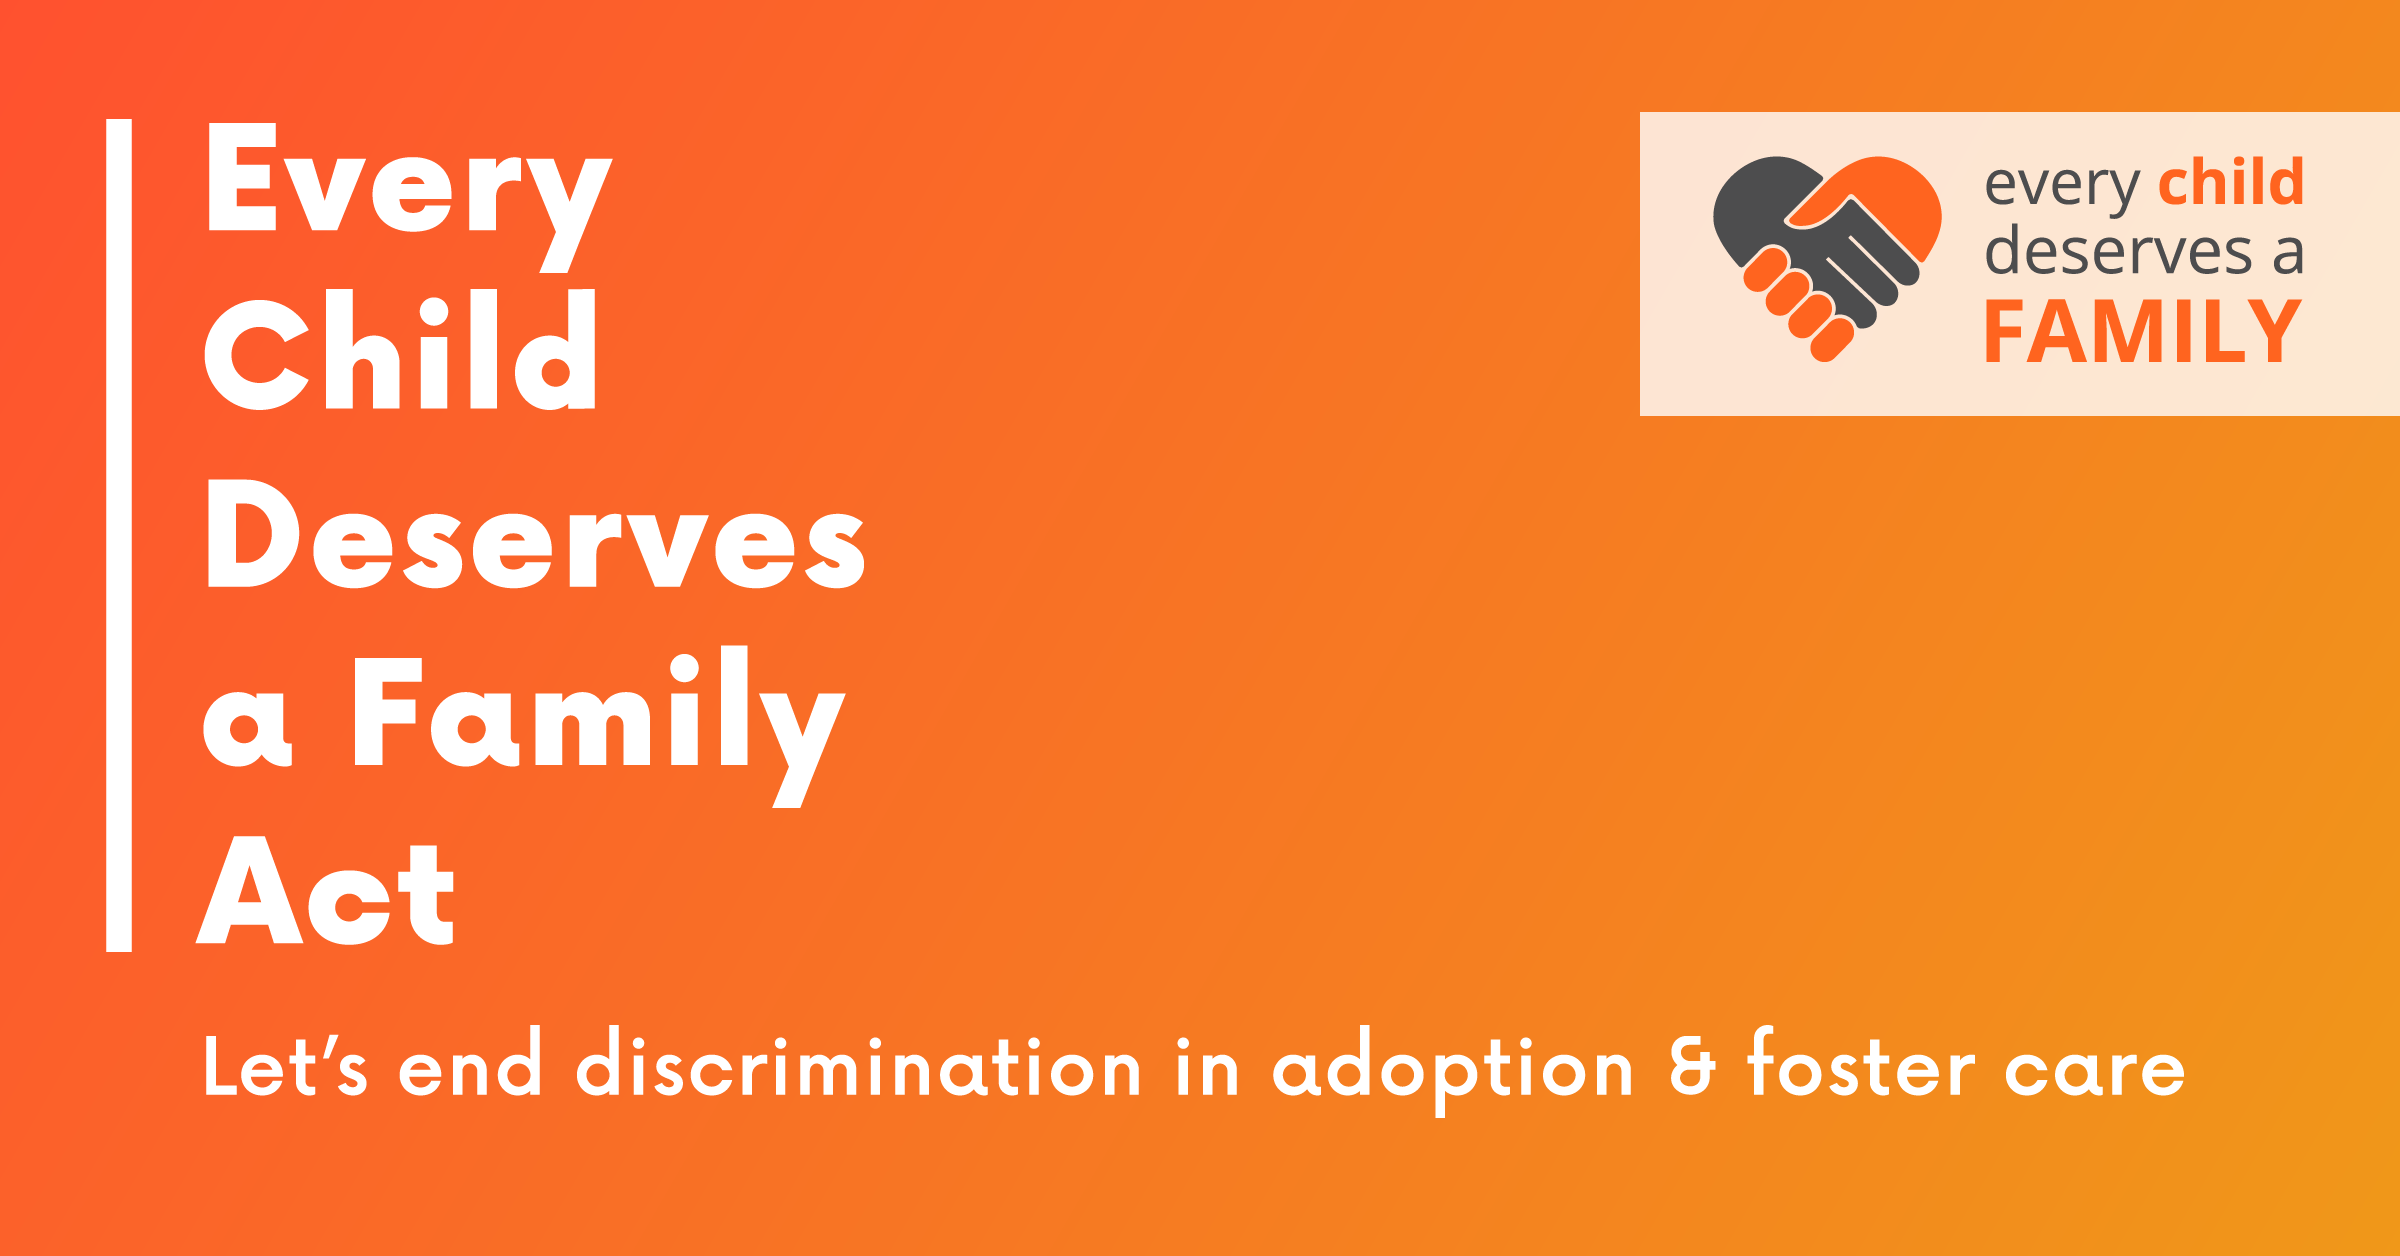 Every Child Deserves a Family Act